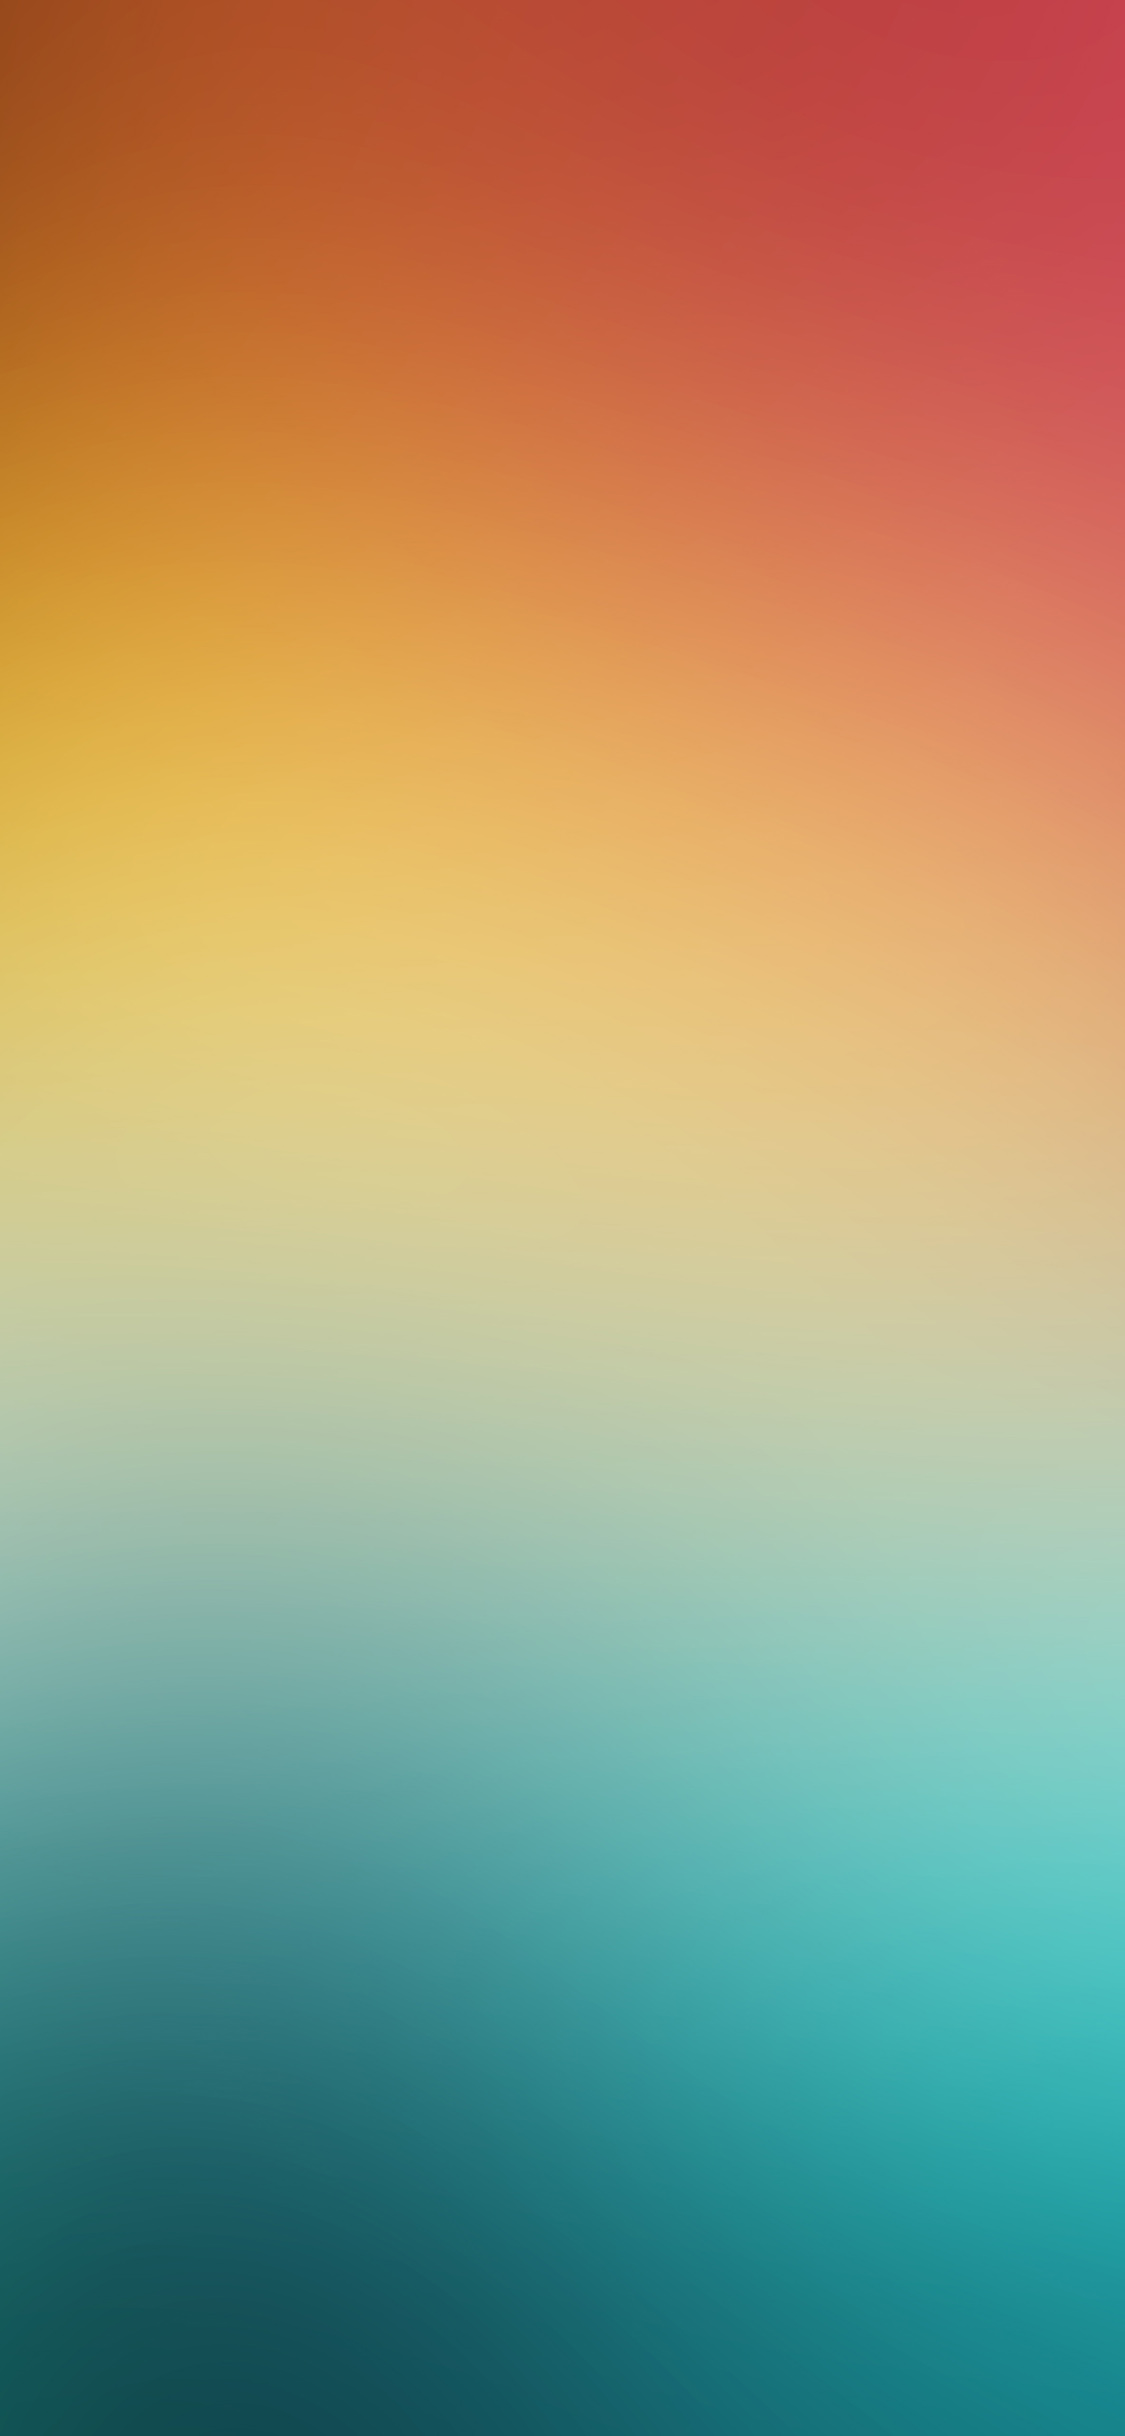 iPhoneXpapers.com-Apple-iPhone-wallpaper-sg60-red-green-korea-morning-gradation-blur